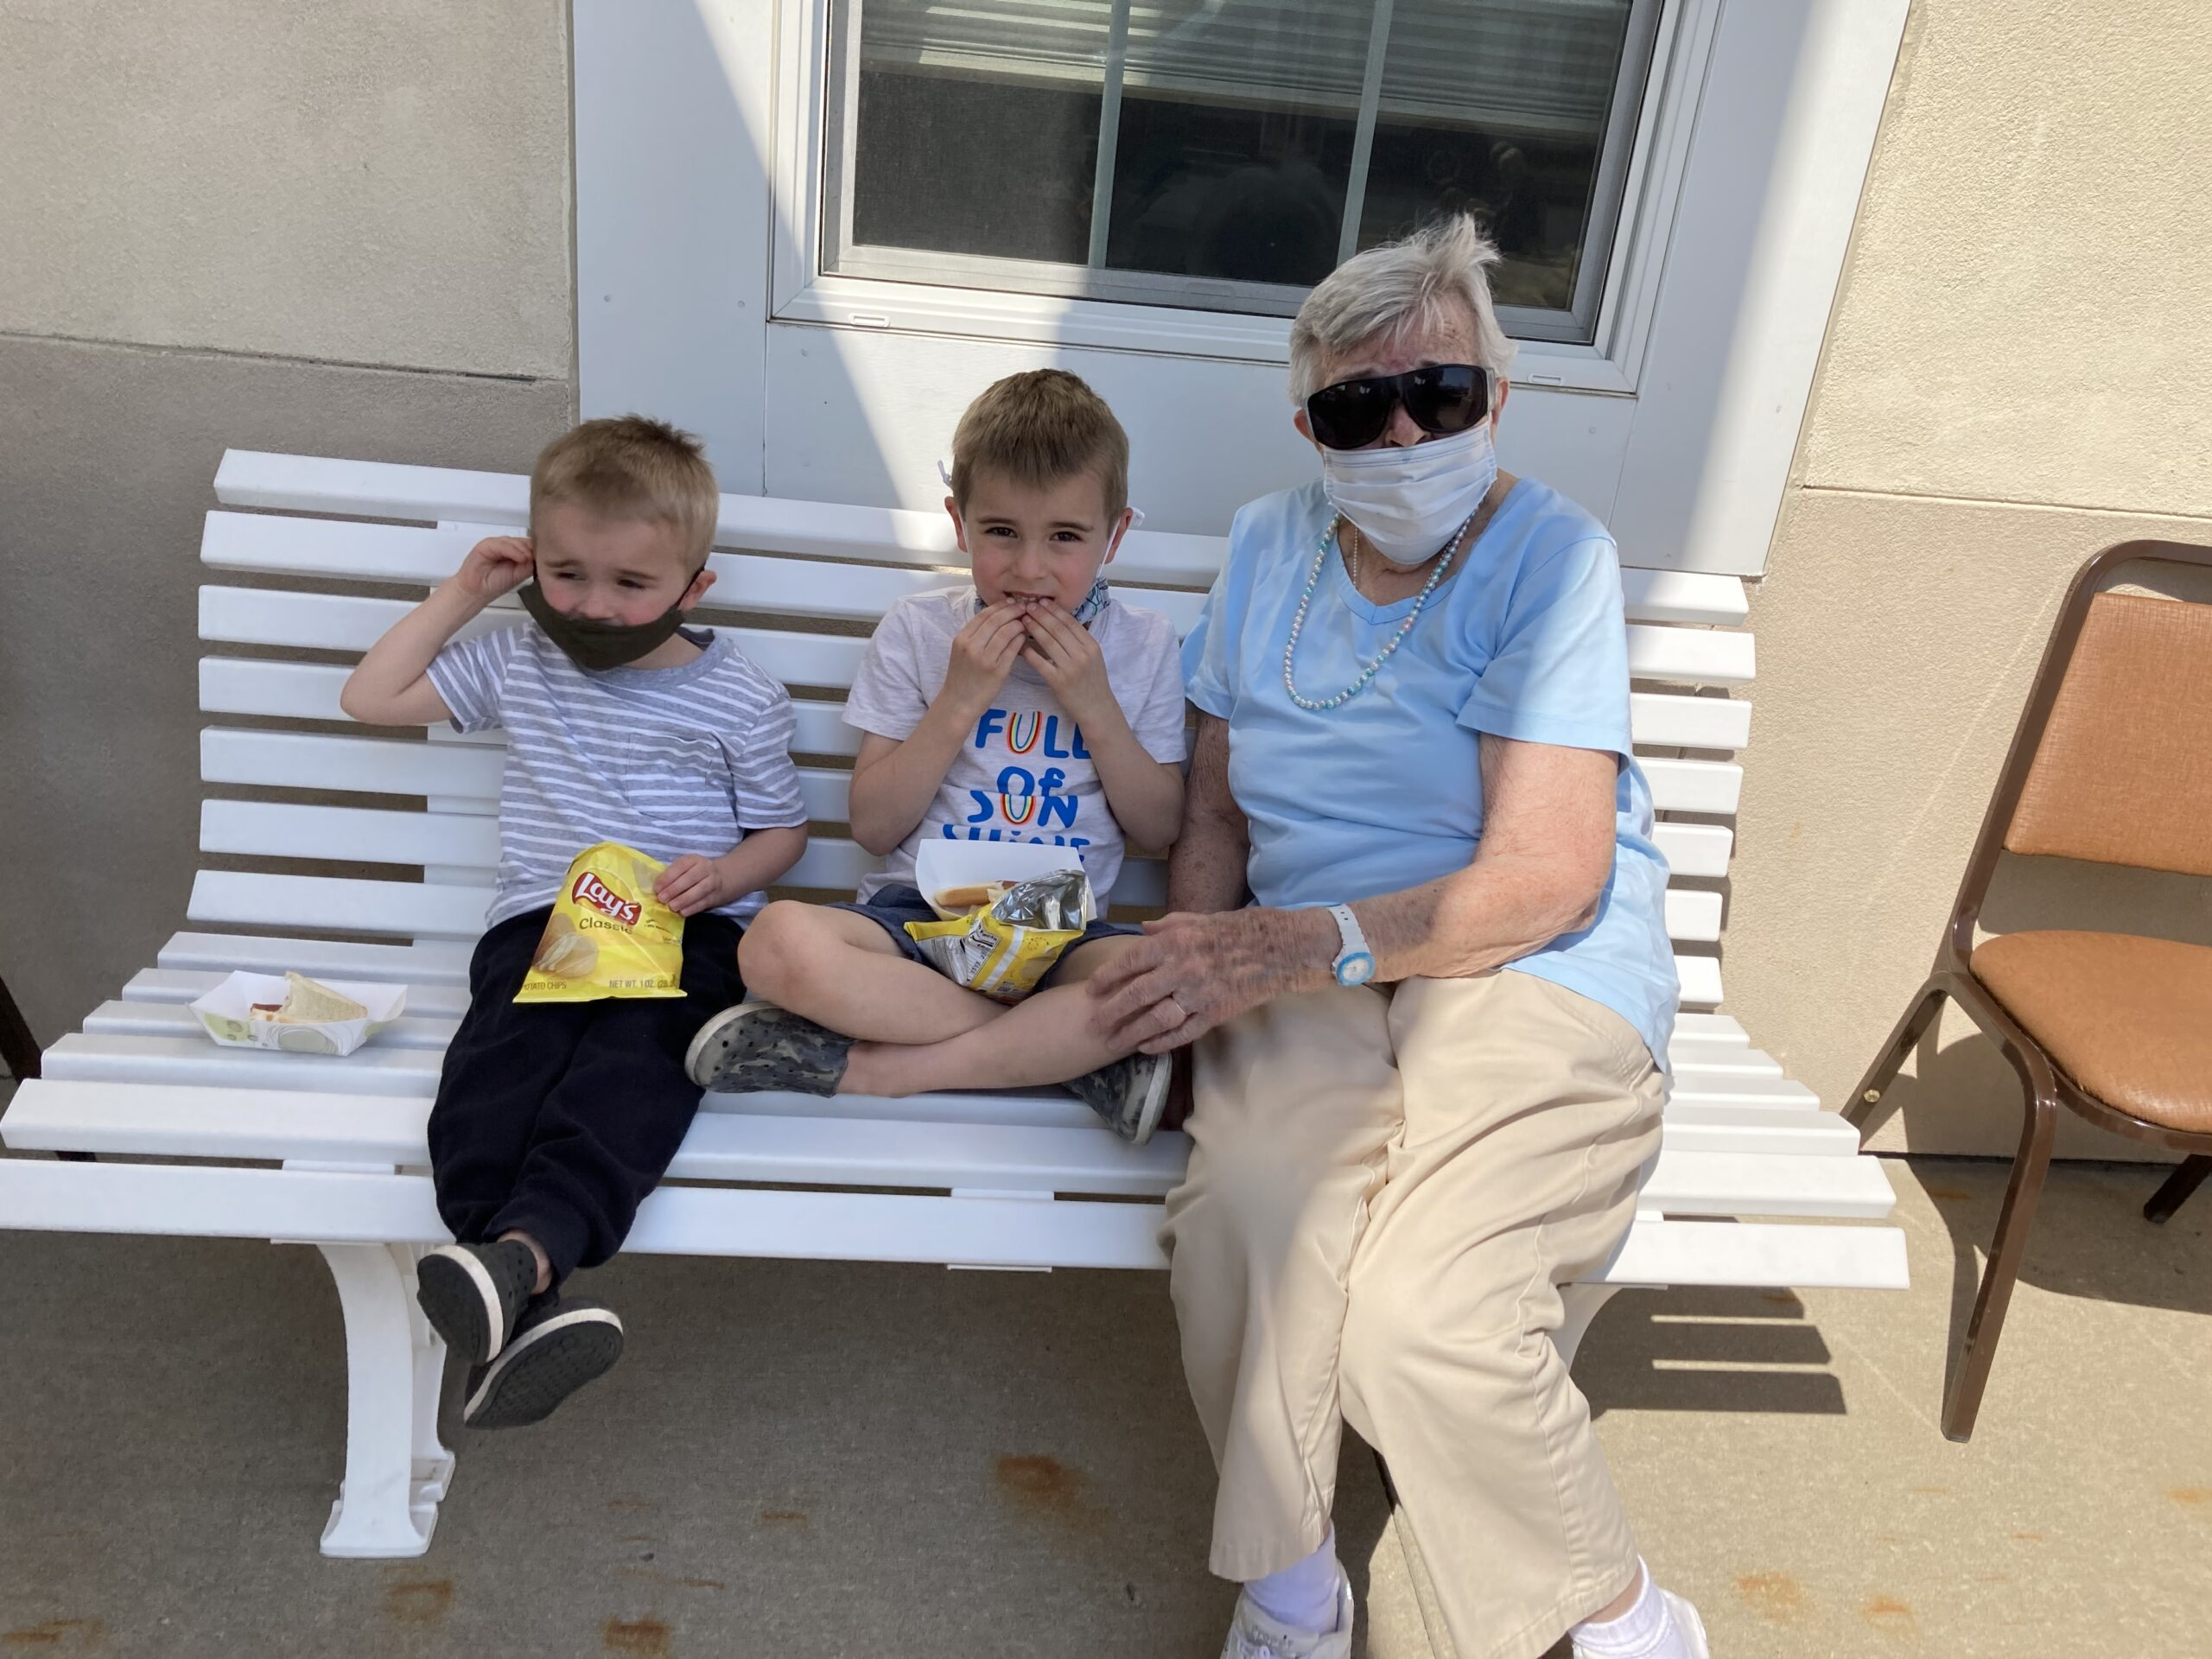 Nannie was overjoyed to see her great grandchildren this Easter